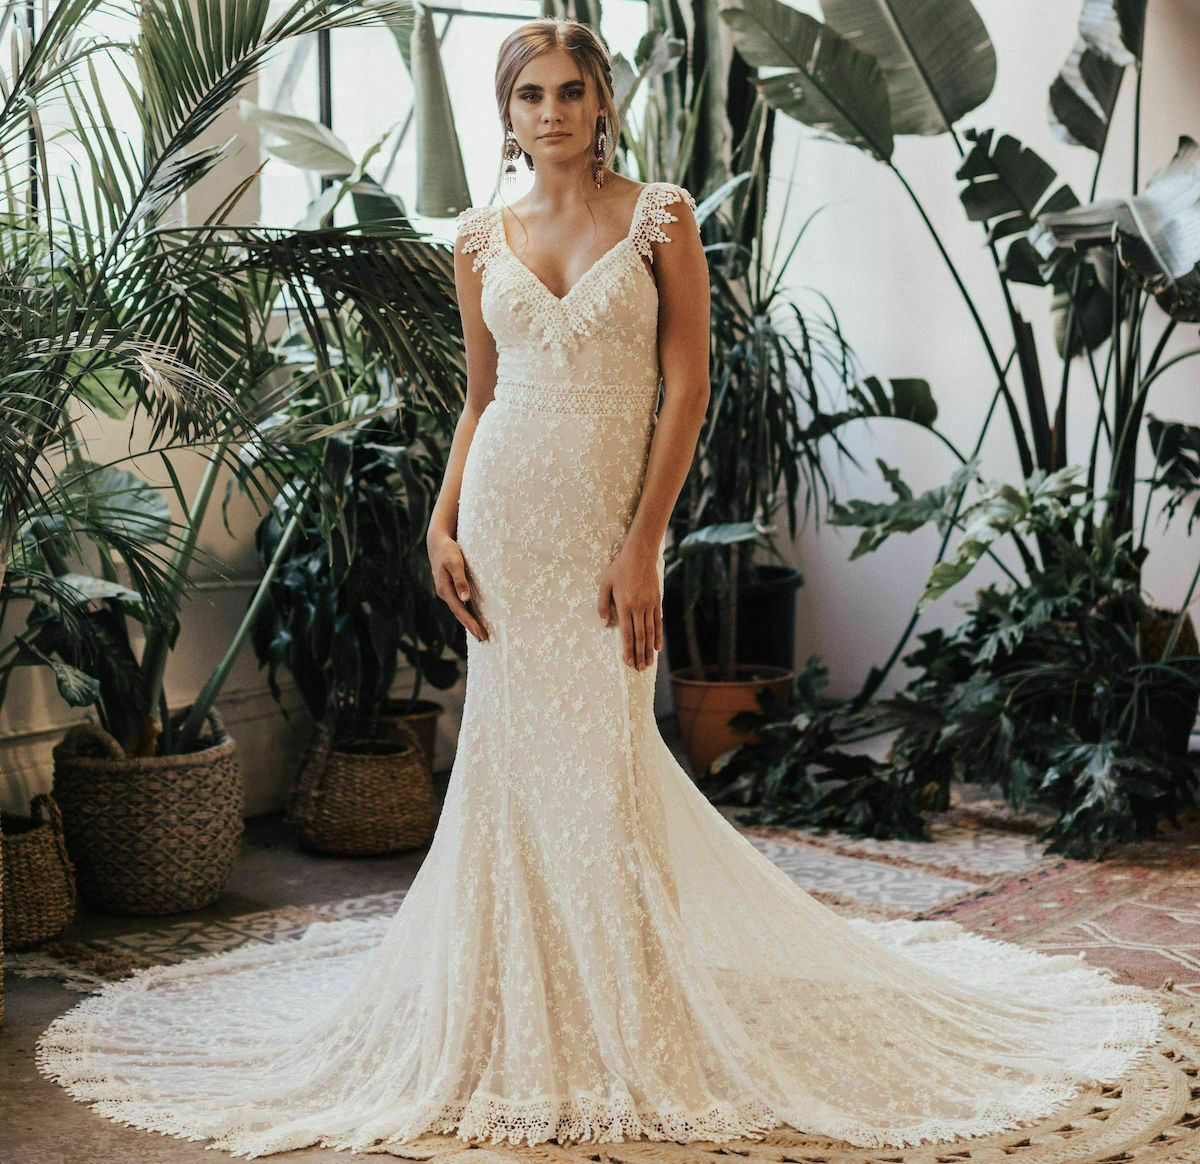 Perla Boho Simple Lace Wedding Dress